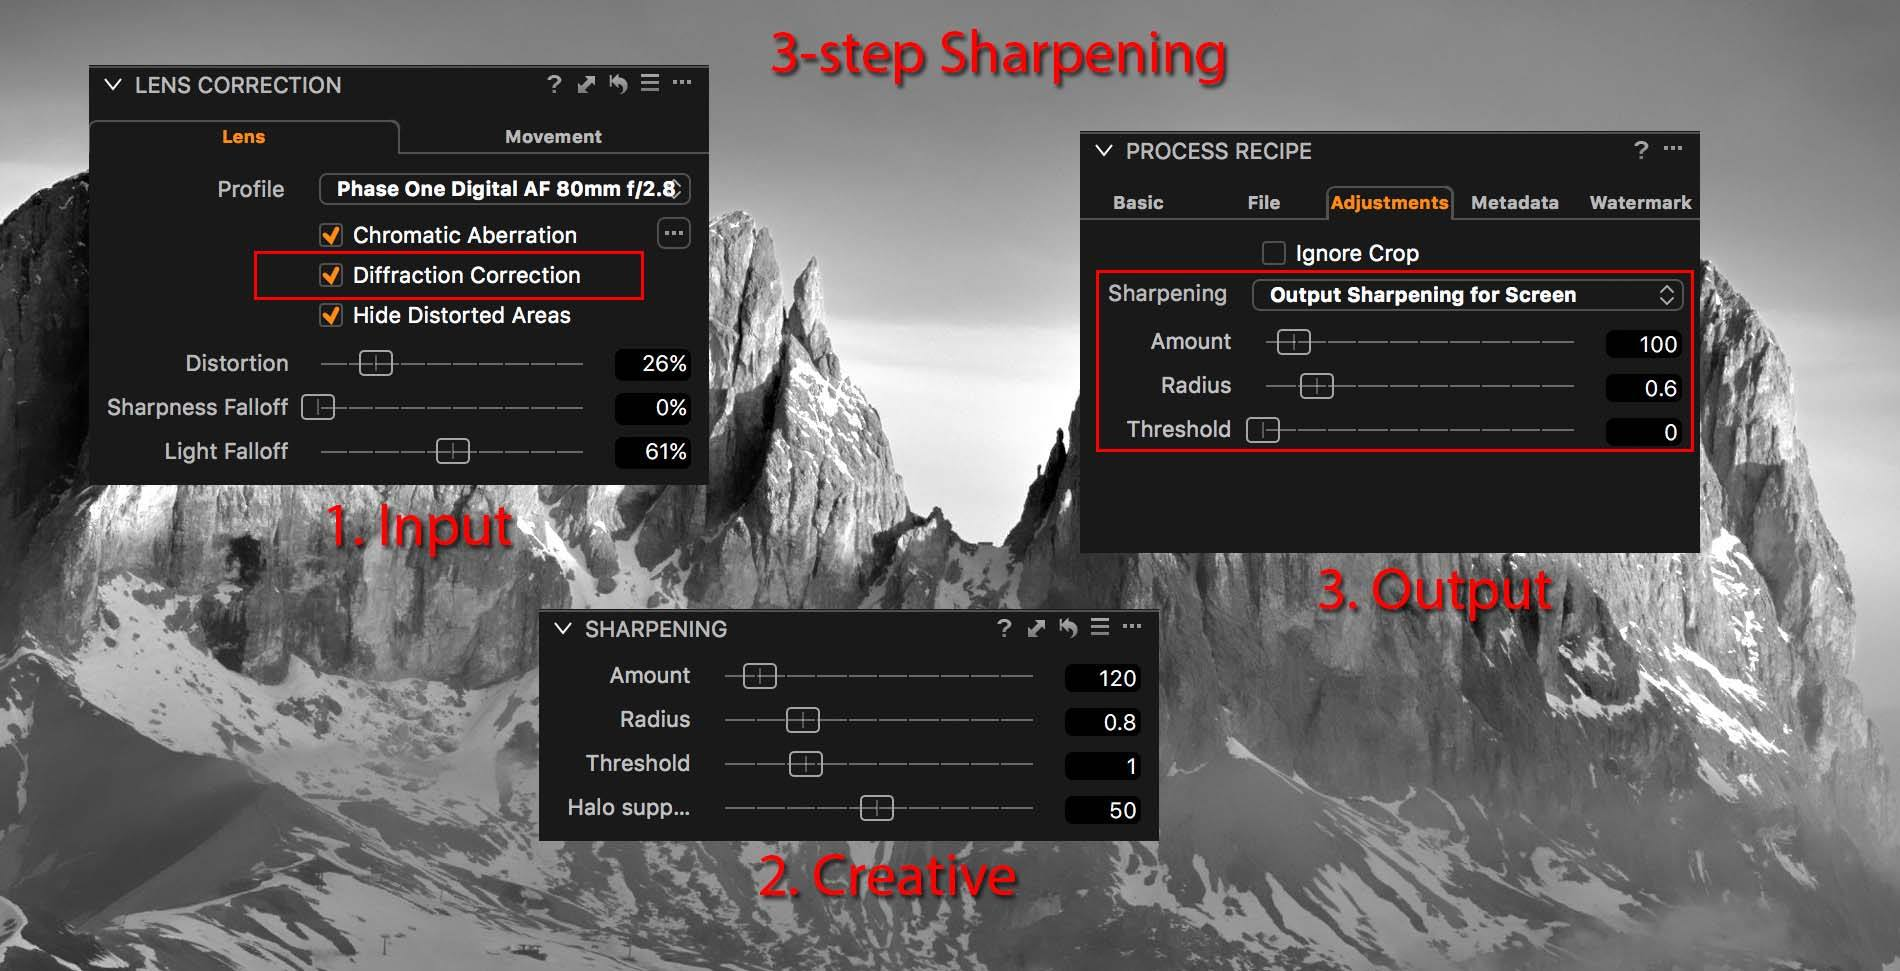 3-step sharpening